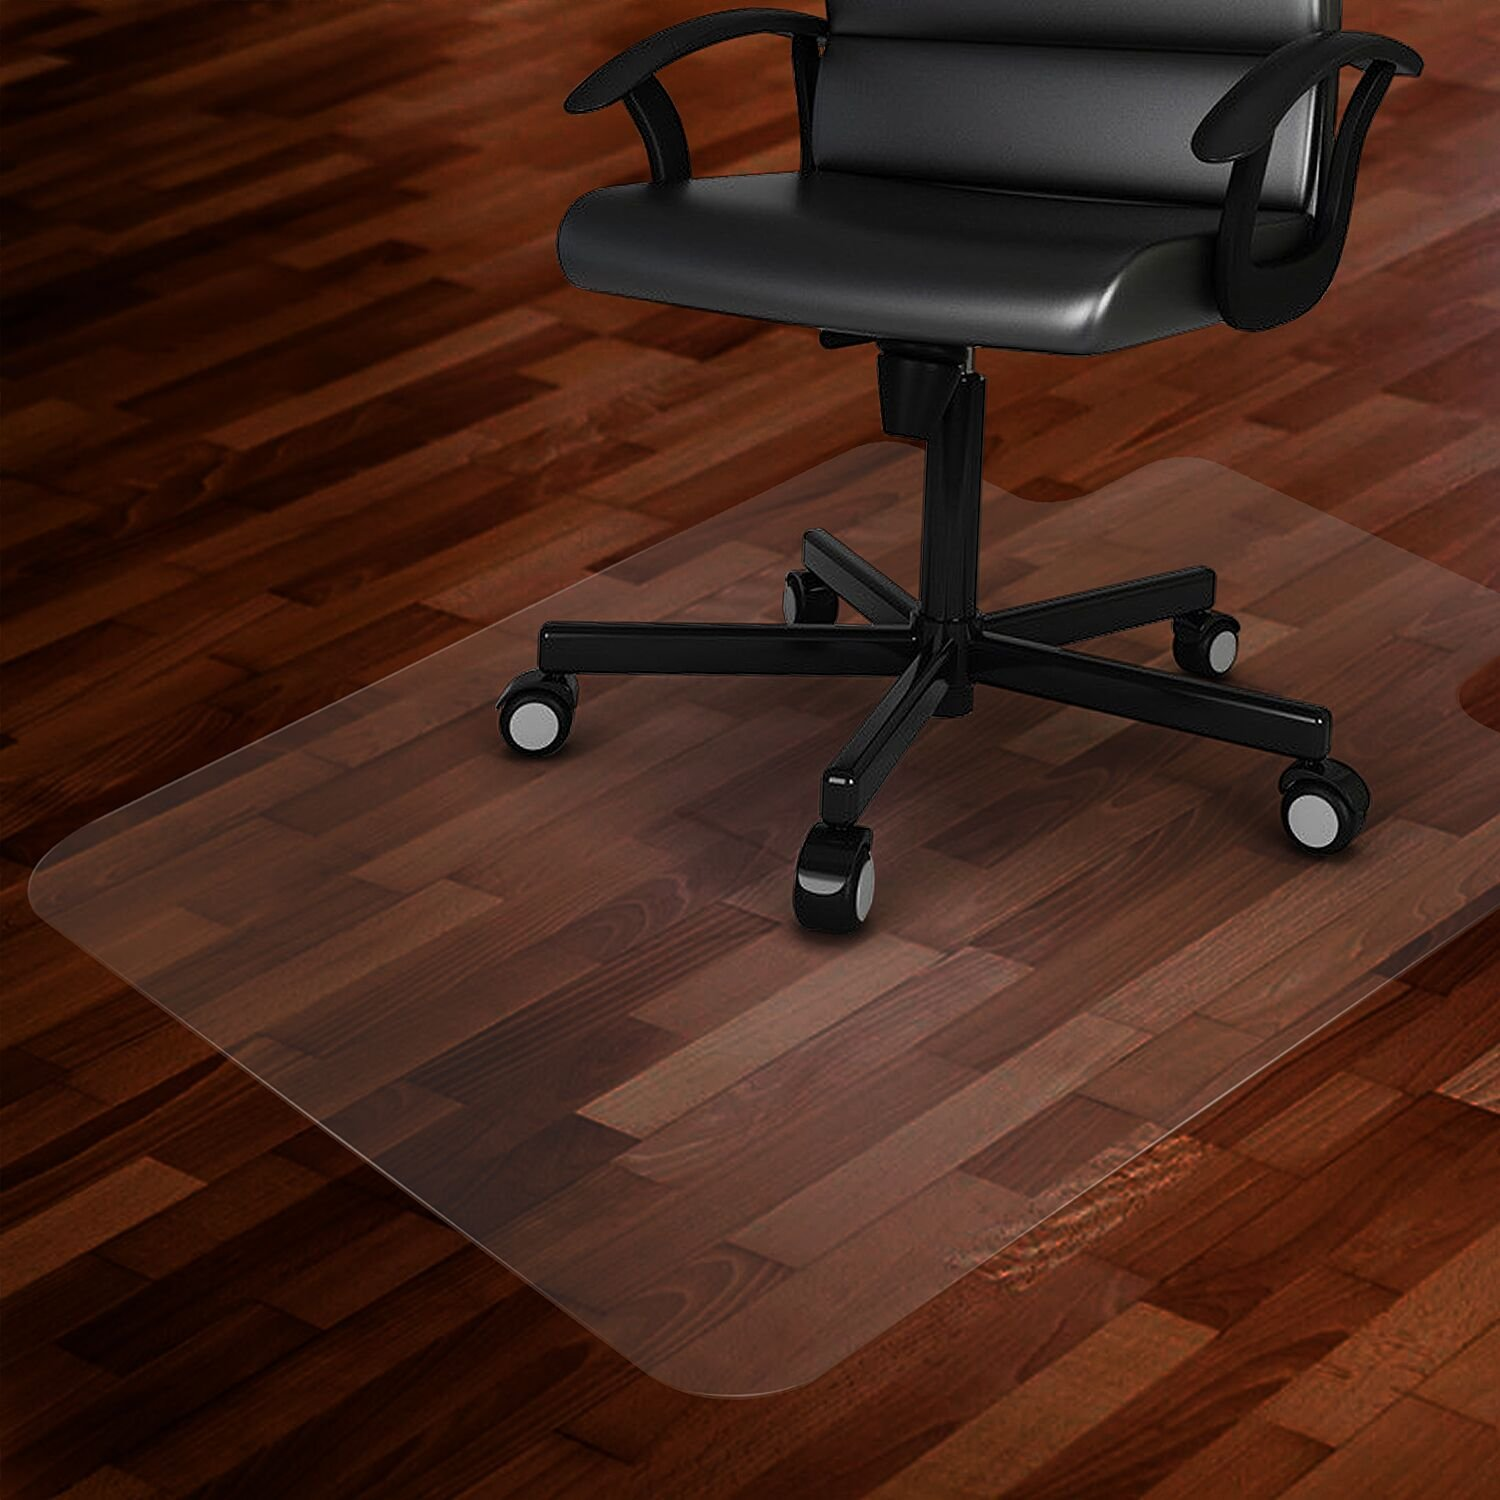 hard floor chair mats shop amazon com